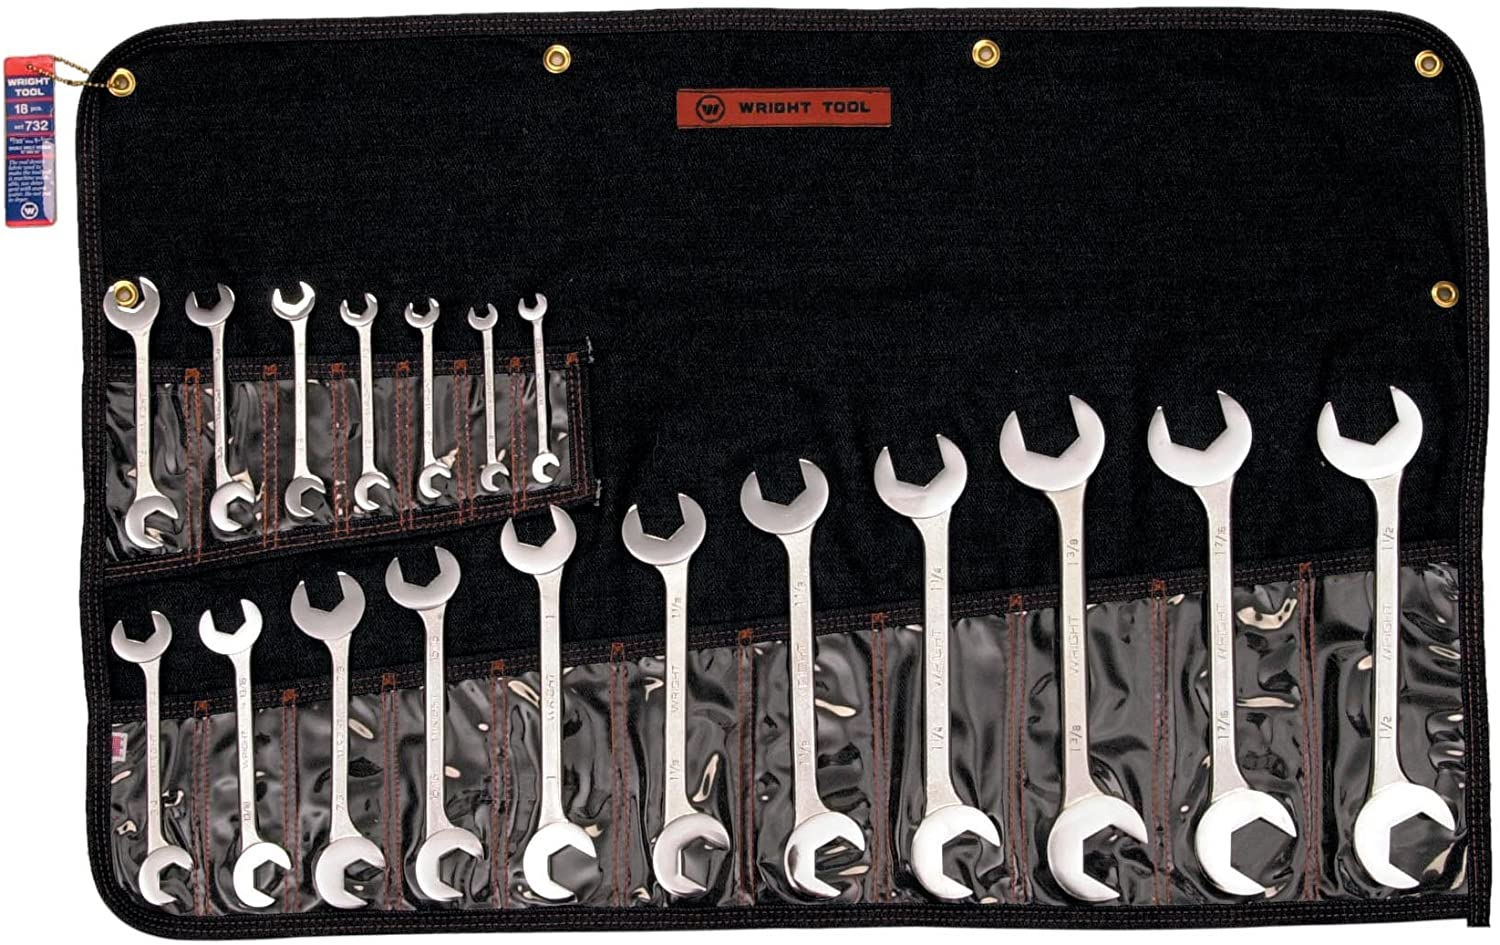 SET 732 18PC COMB WRENCH SET 18 Pc. Open End, Double Angle